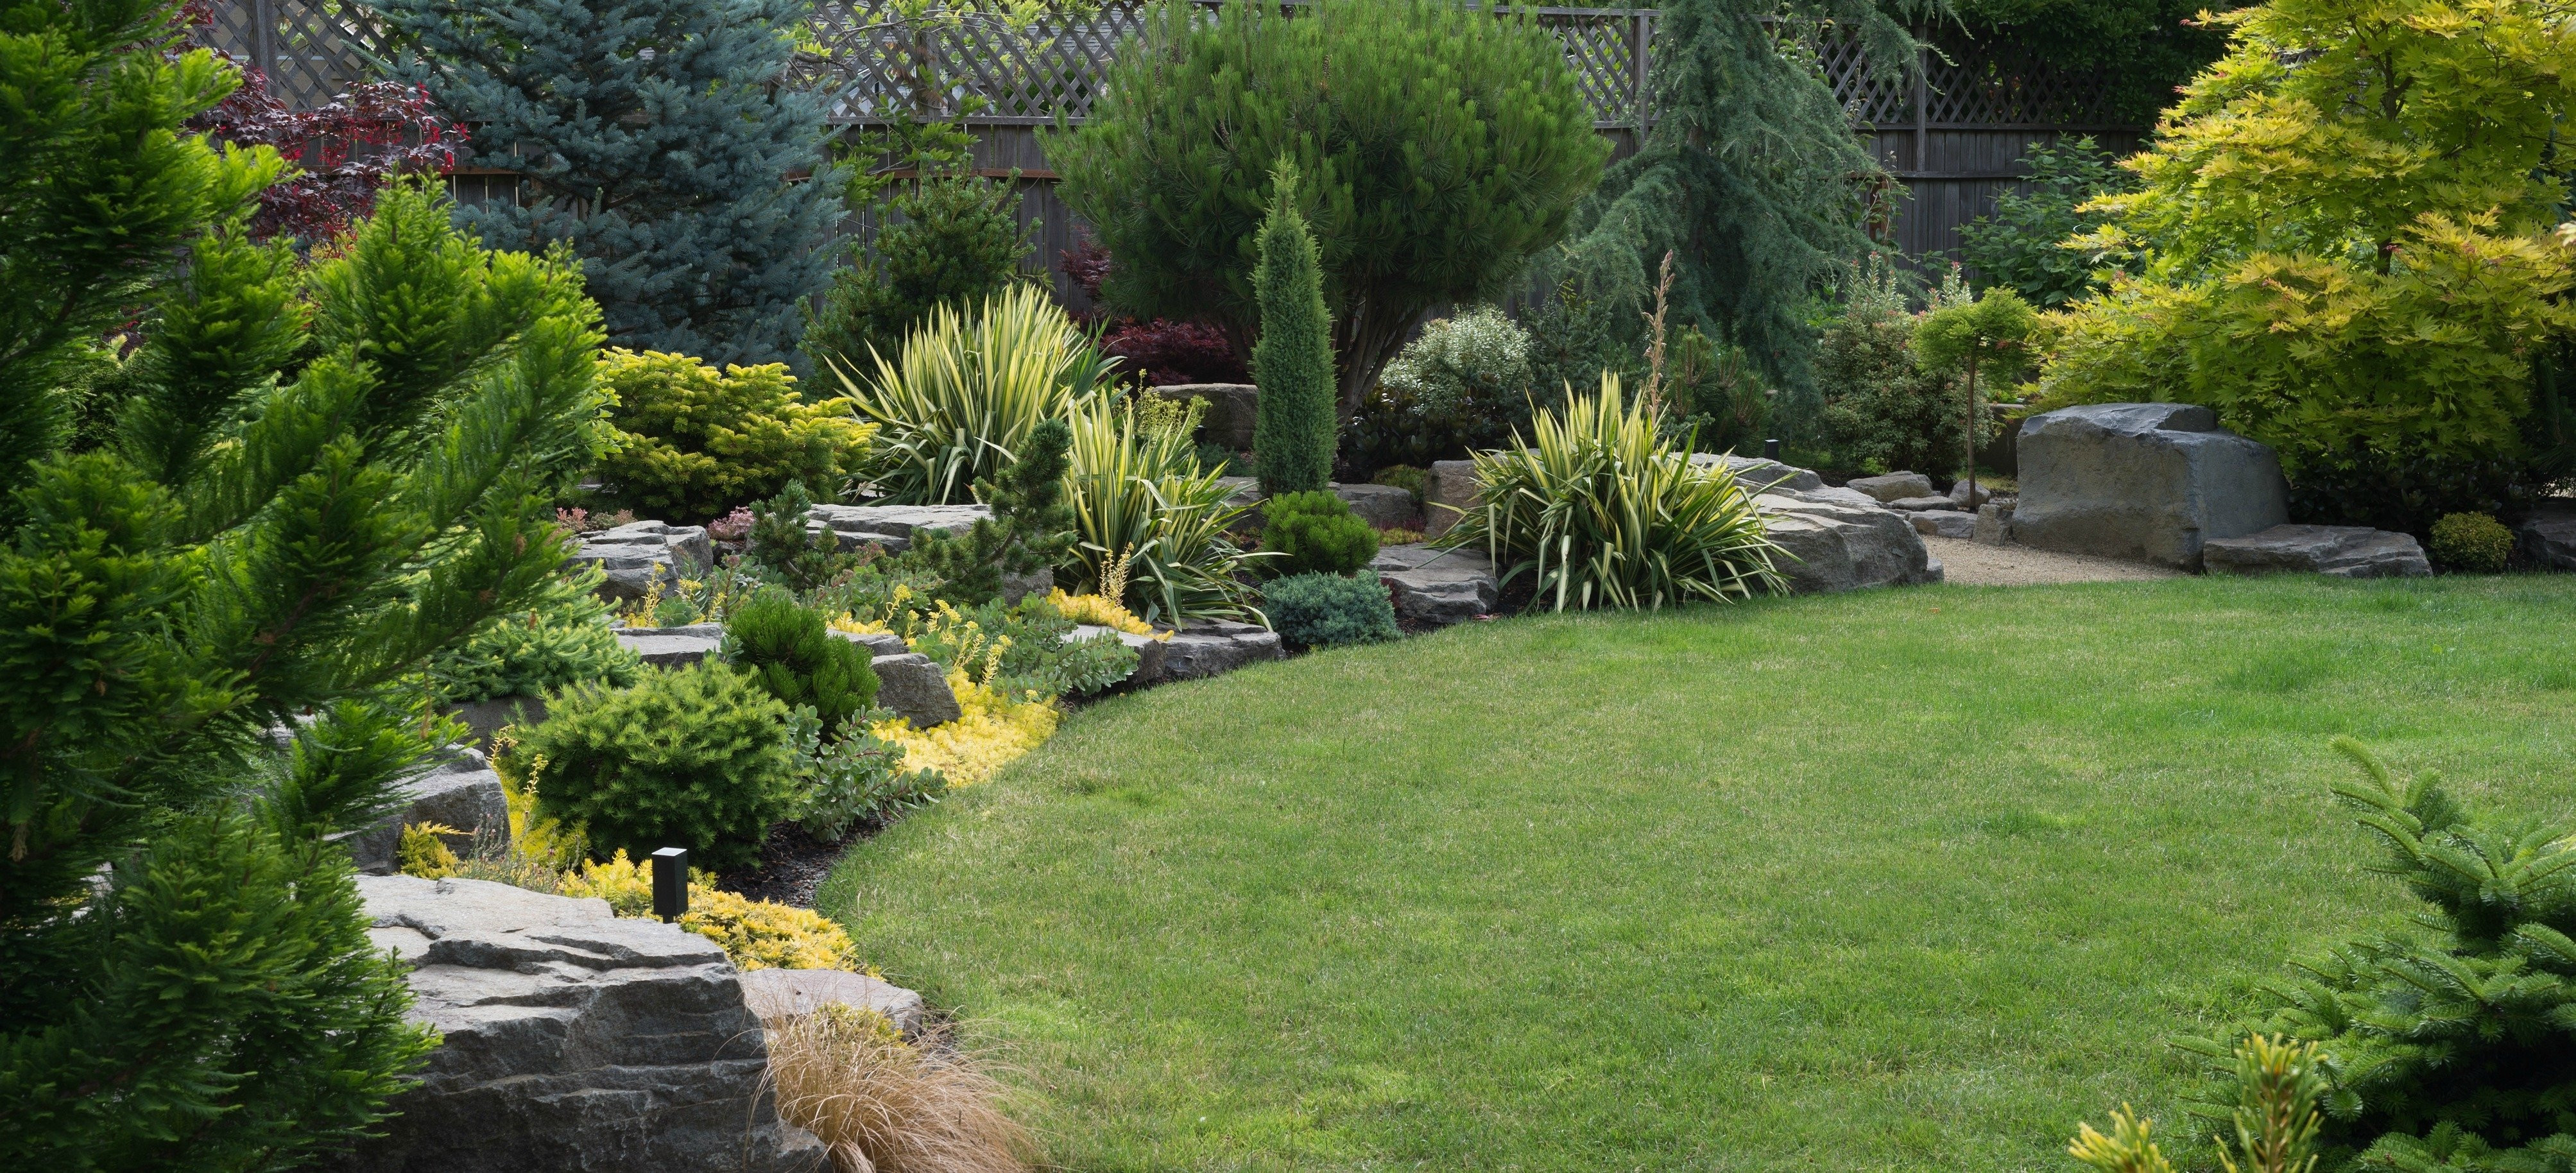 Best ideas about Diy Backyard Landscaping . Save or Pin How to DIY Backyard Landscaping Ideas to Increase Outdoor Now.